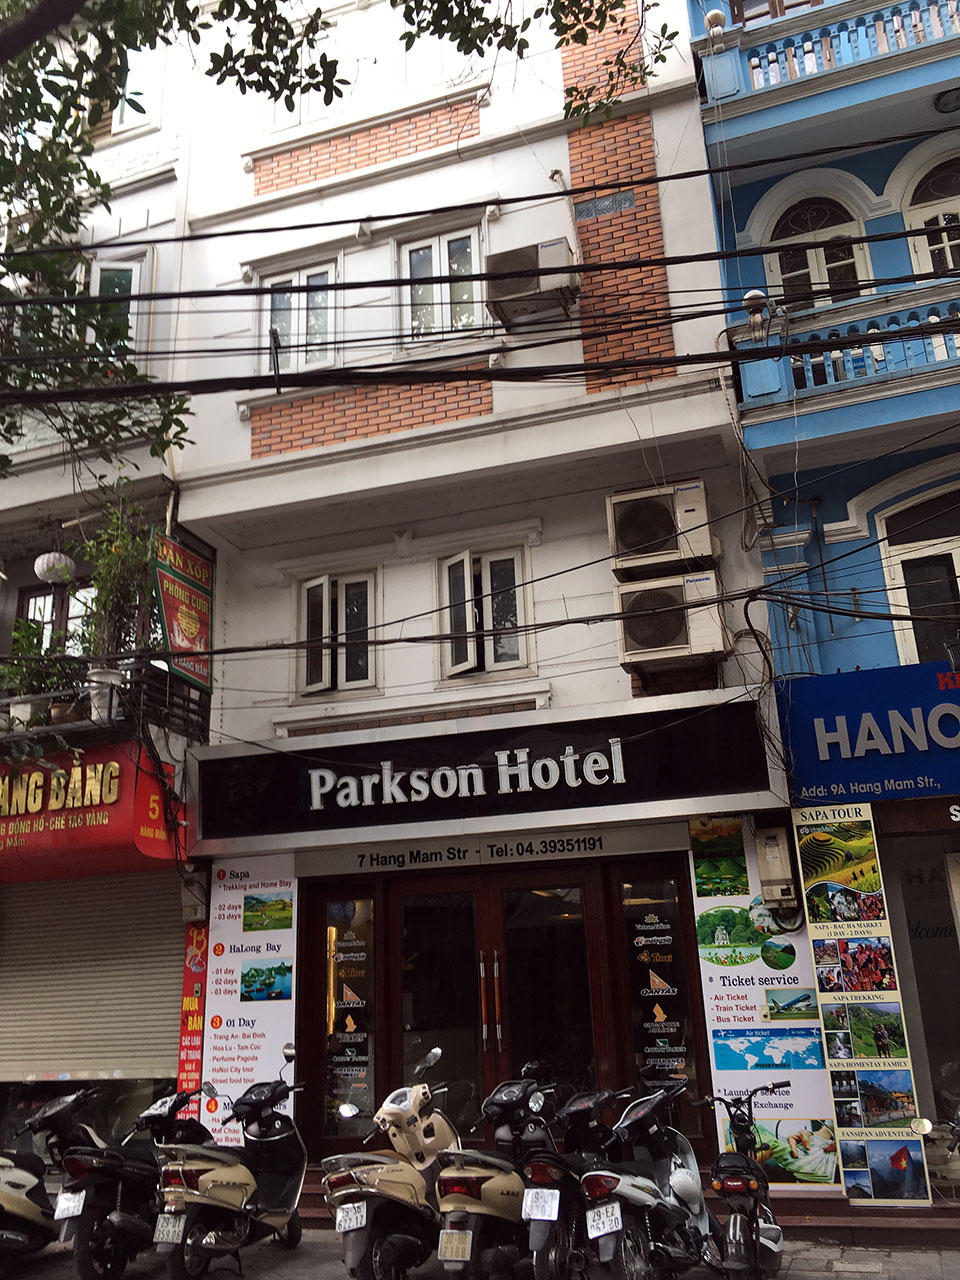 Hotel room reservation in Hanoi with Hanoi Parkson Hotel